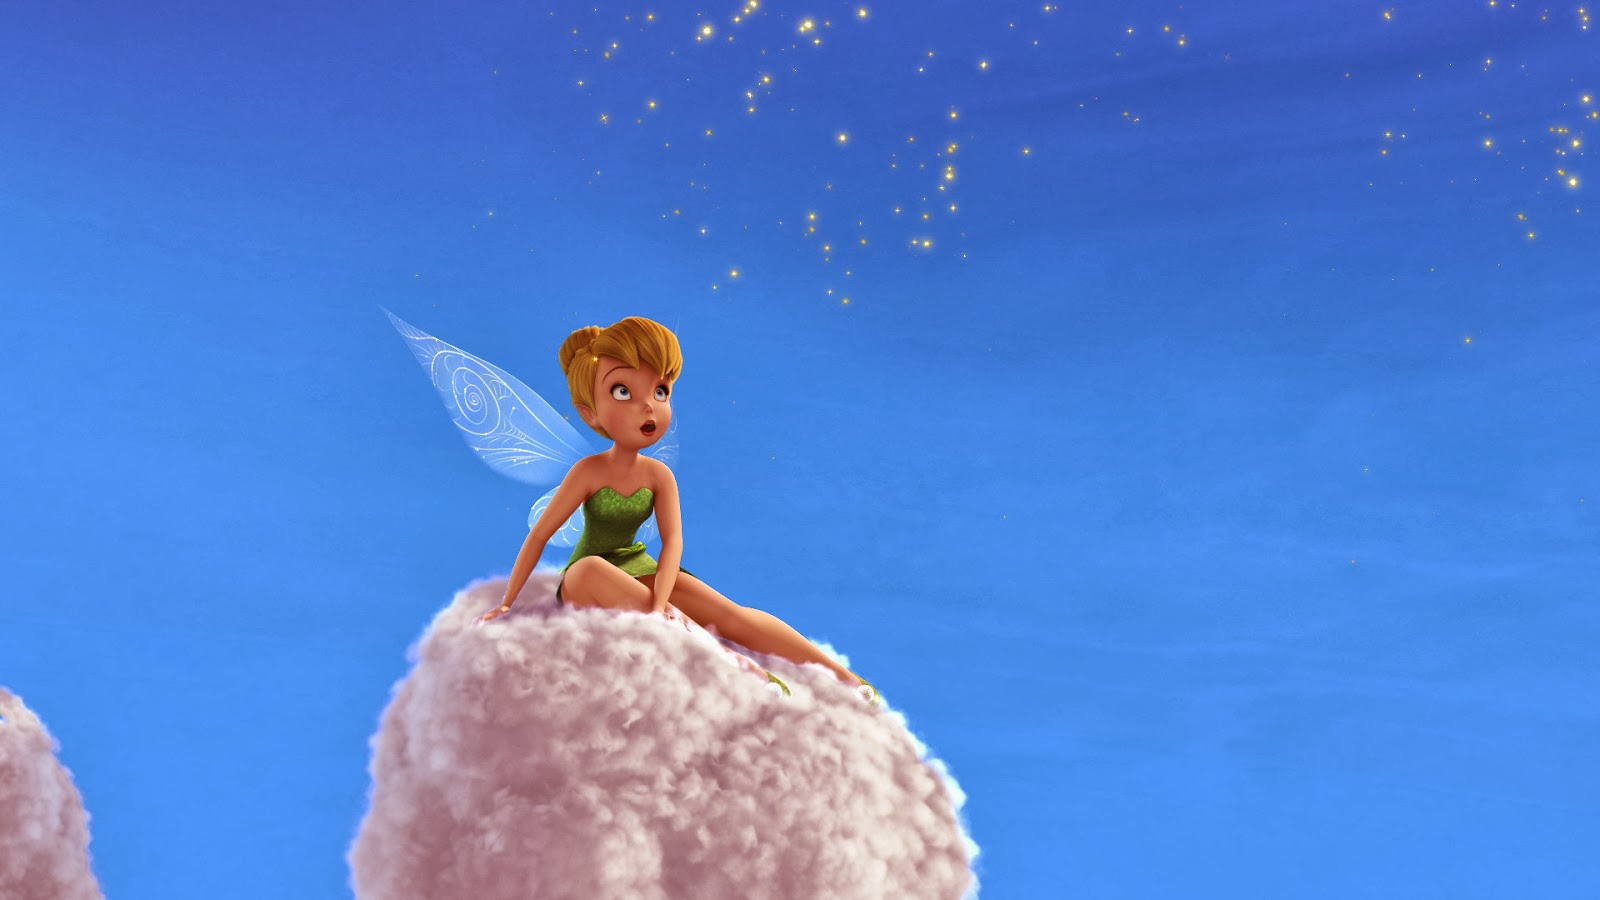 10 wallpaper tinkerbell hd 1080p deloiz wallpaper